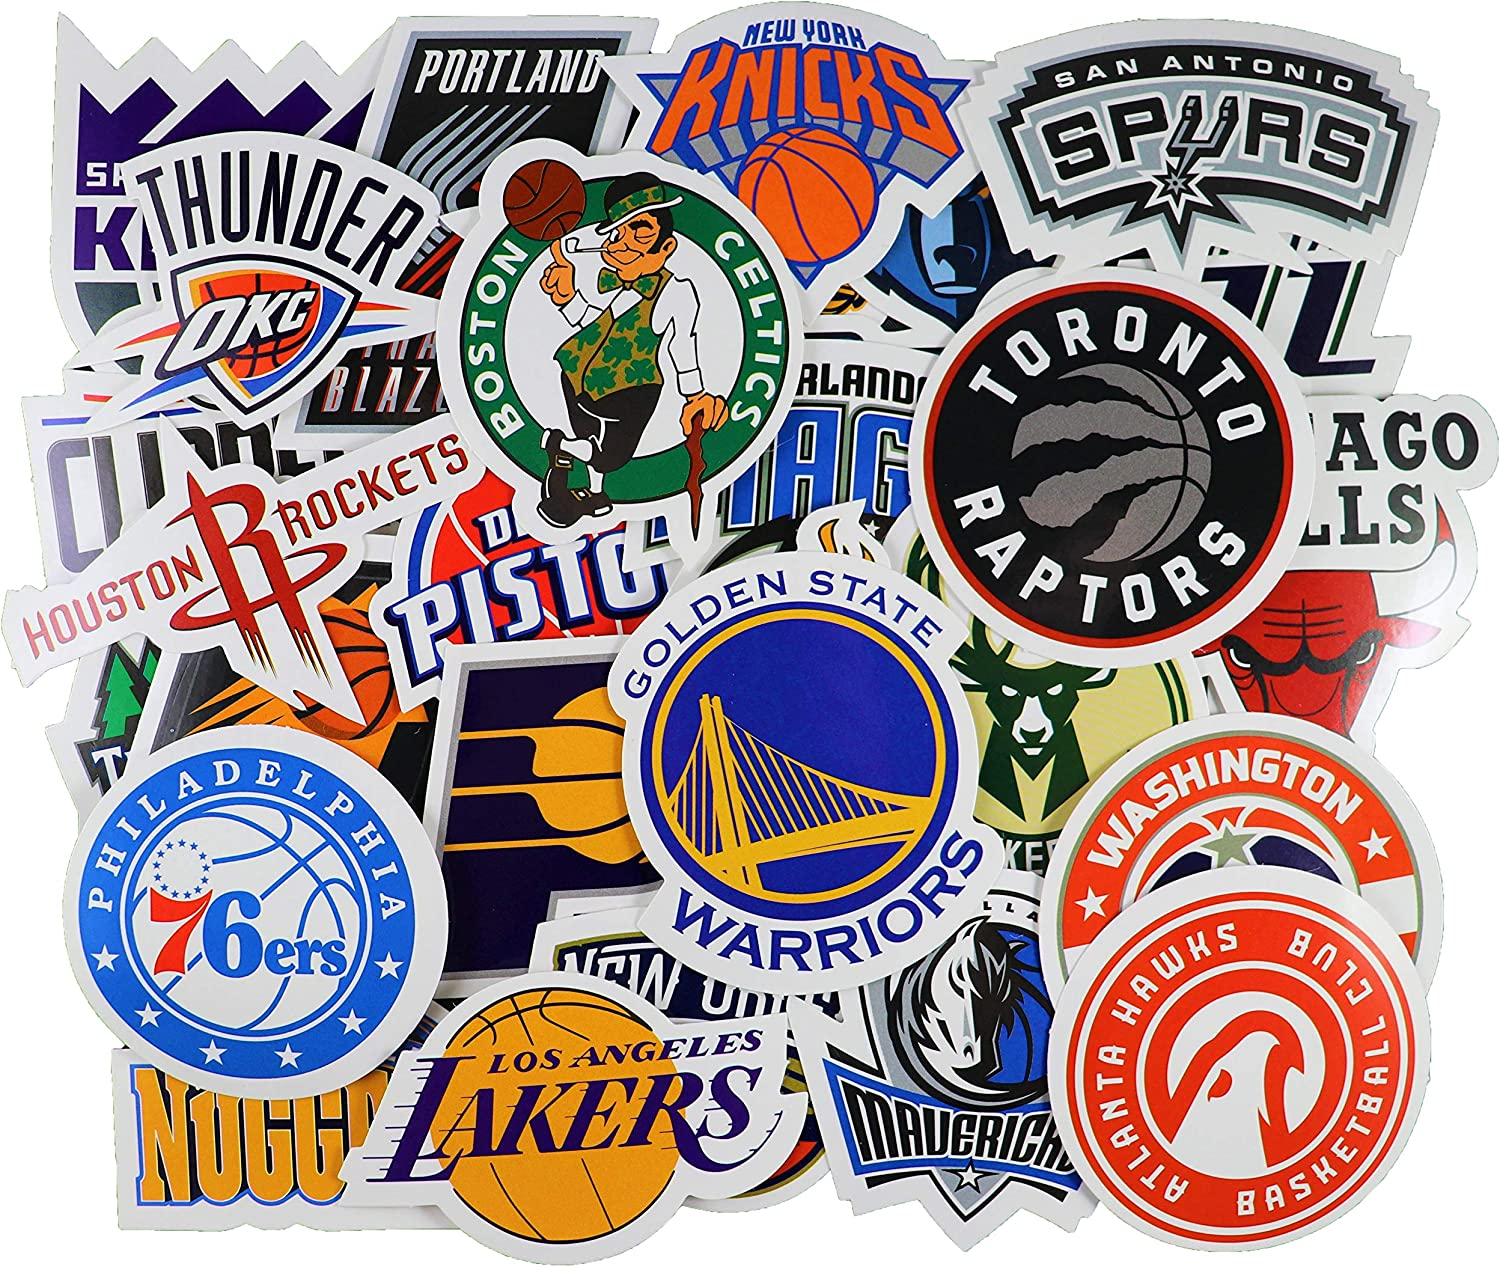 30pcs NBA Team Stickers Creative DIY Stickers Funny Decorative Cartoon for Cartoon PC Luggage Computer Notebook Phone Home Wall Garden Window Snowboard